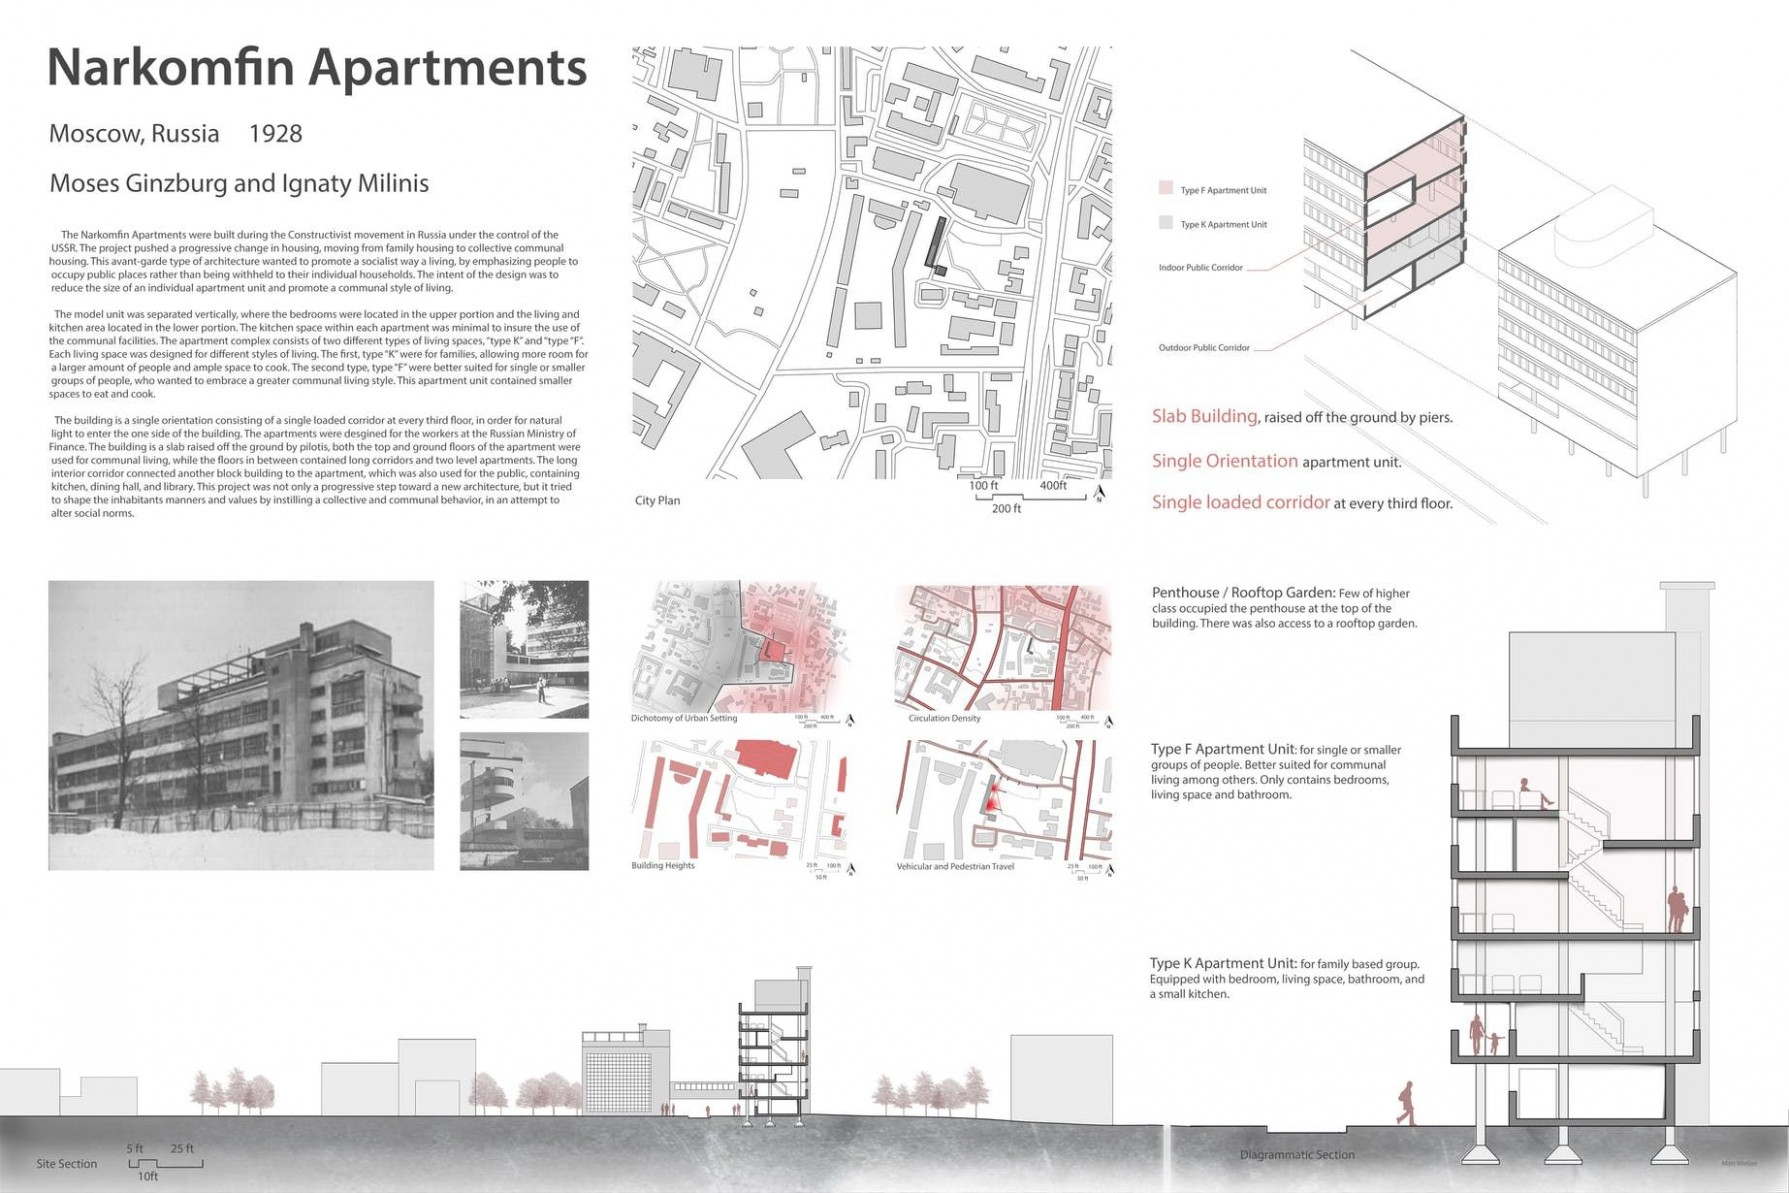 Housing Case Study: Narkomfin Apartments  Matthew Wieber  - Apartment Design Case Study